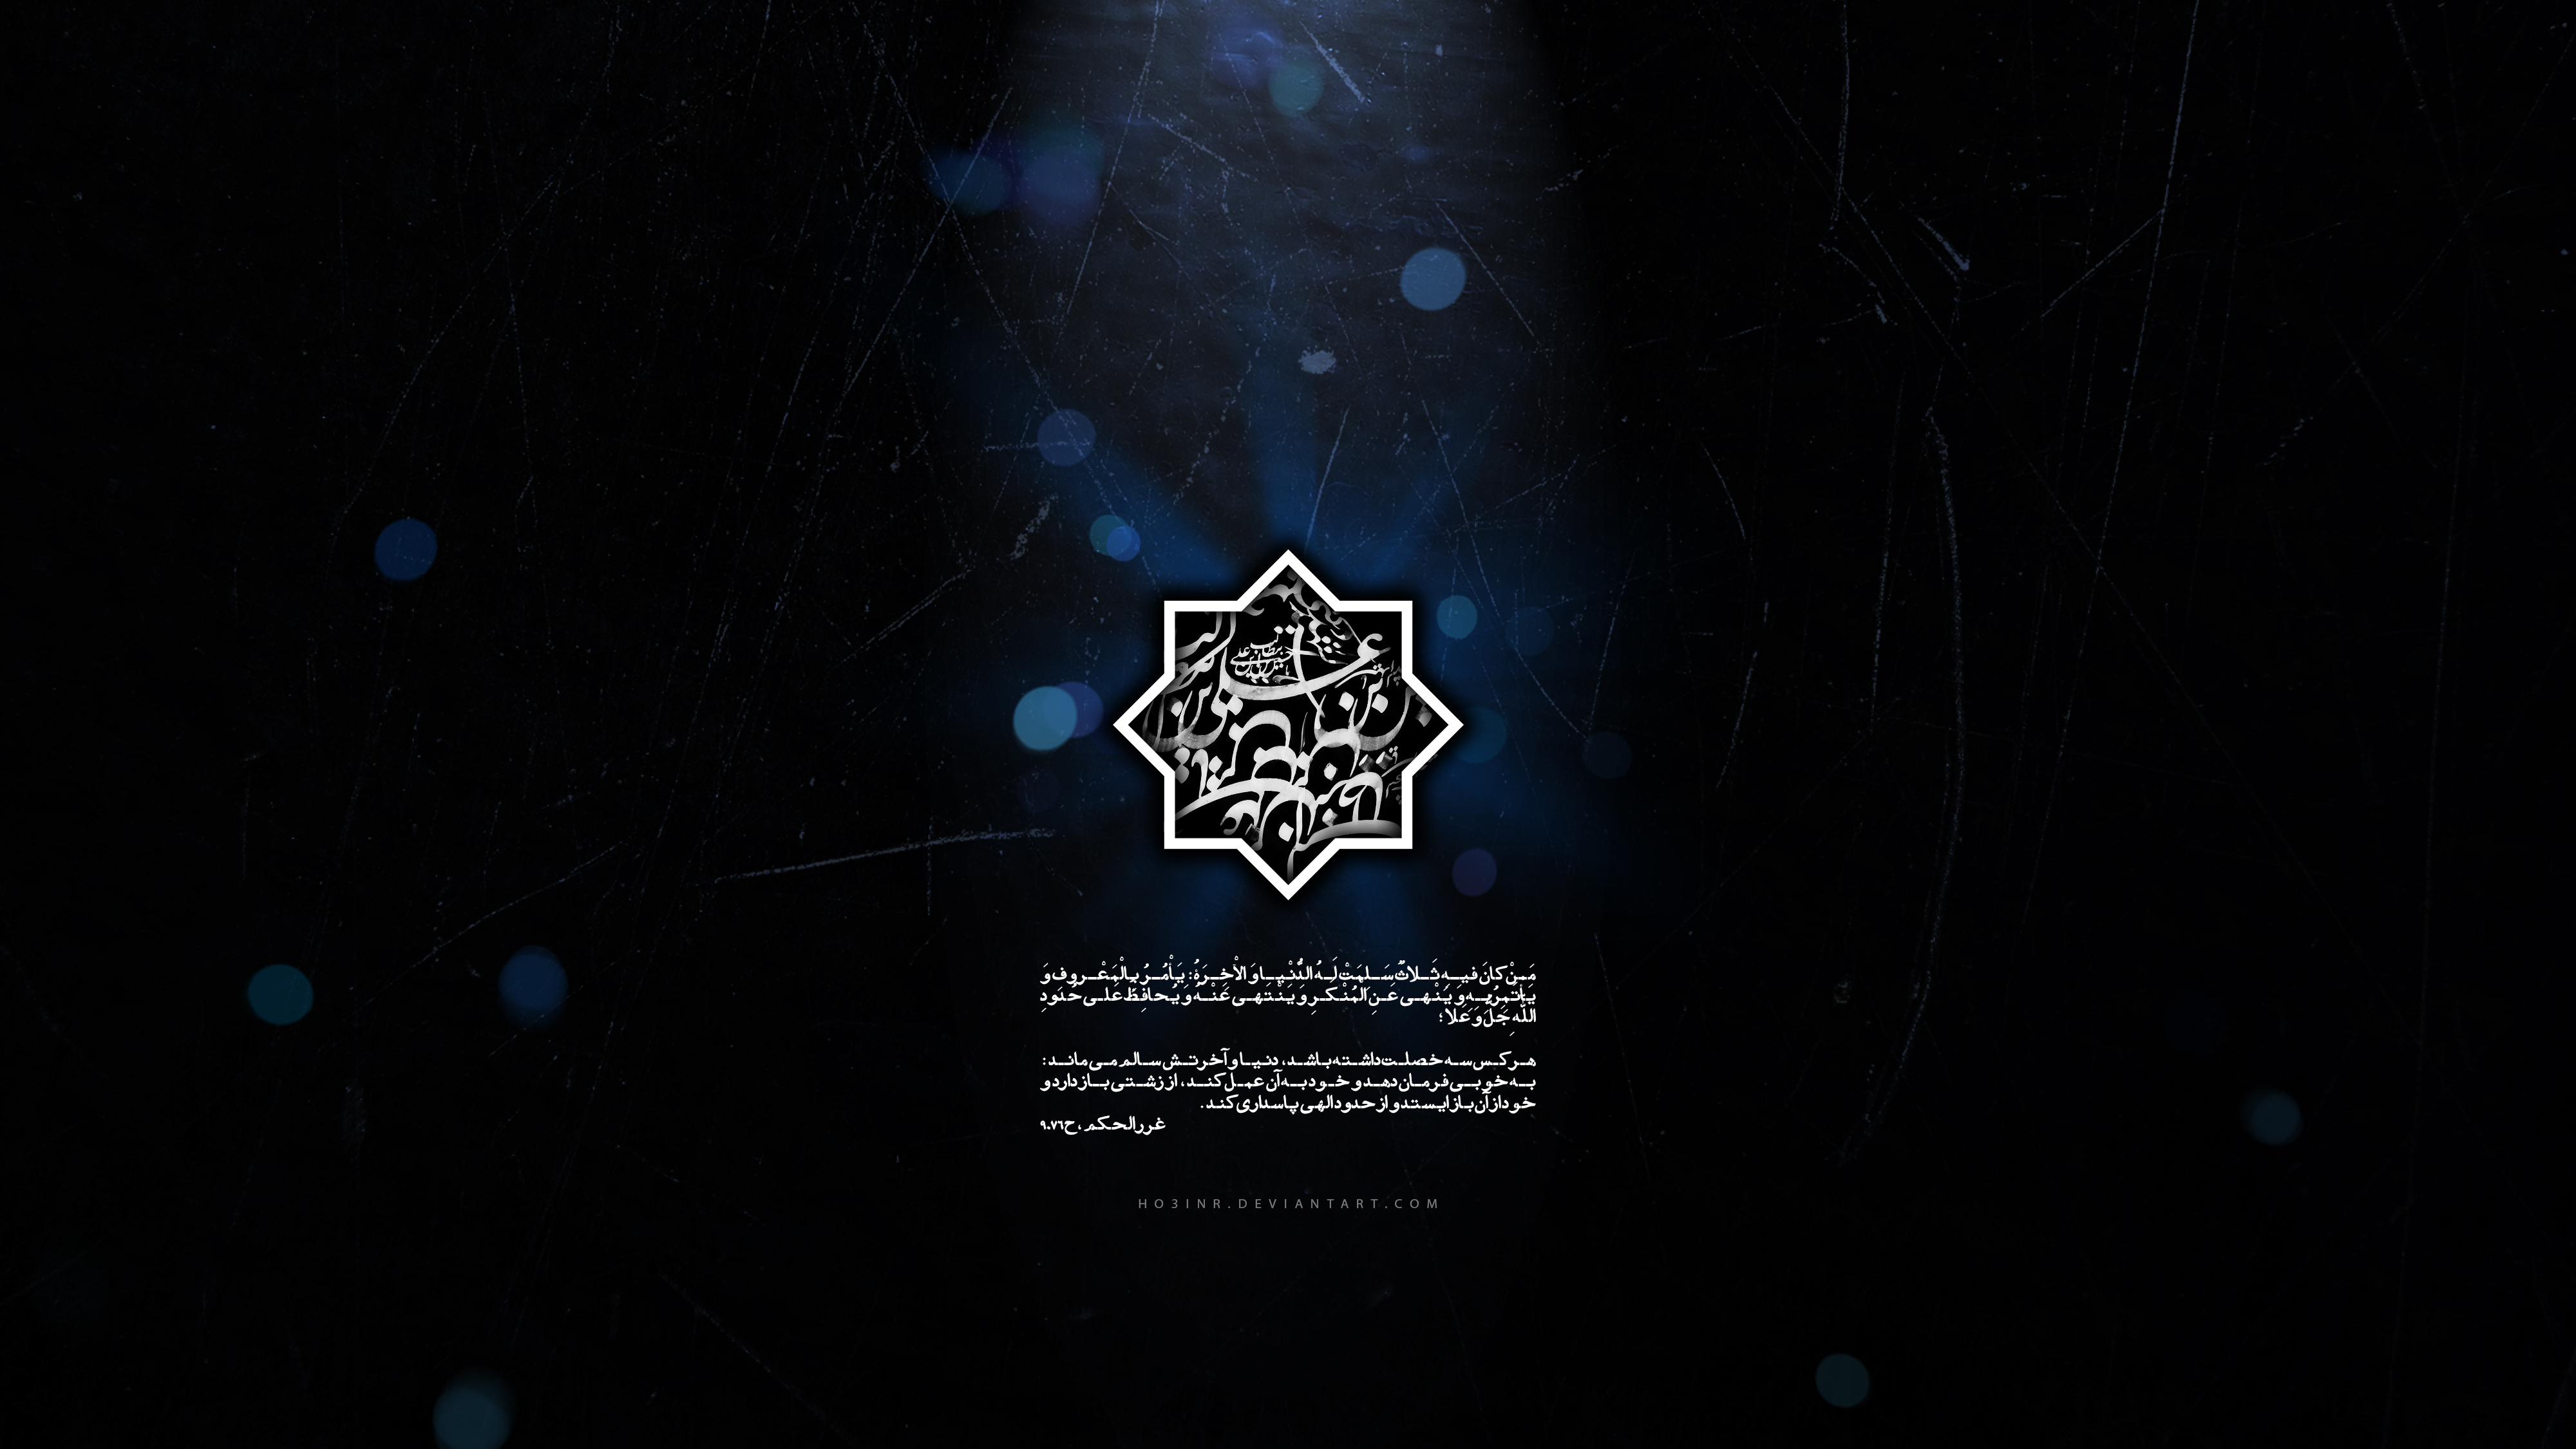 Imam ali pbuh wallpaper by ho3inr on deviantart - Imam wallpaper ...